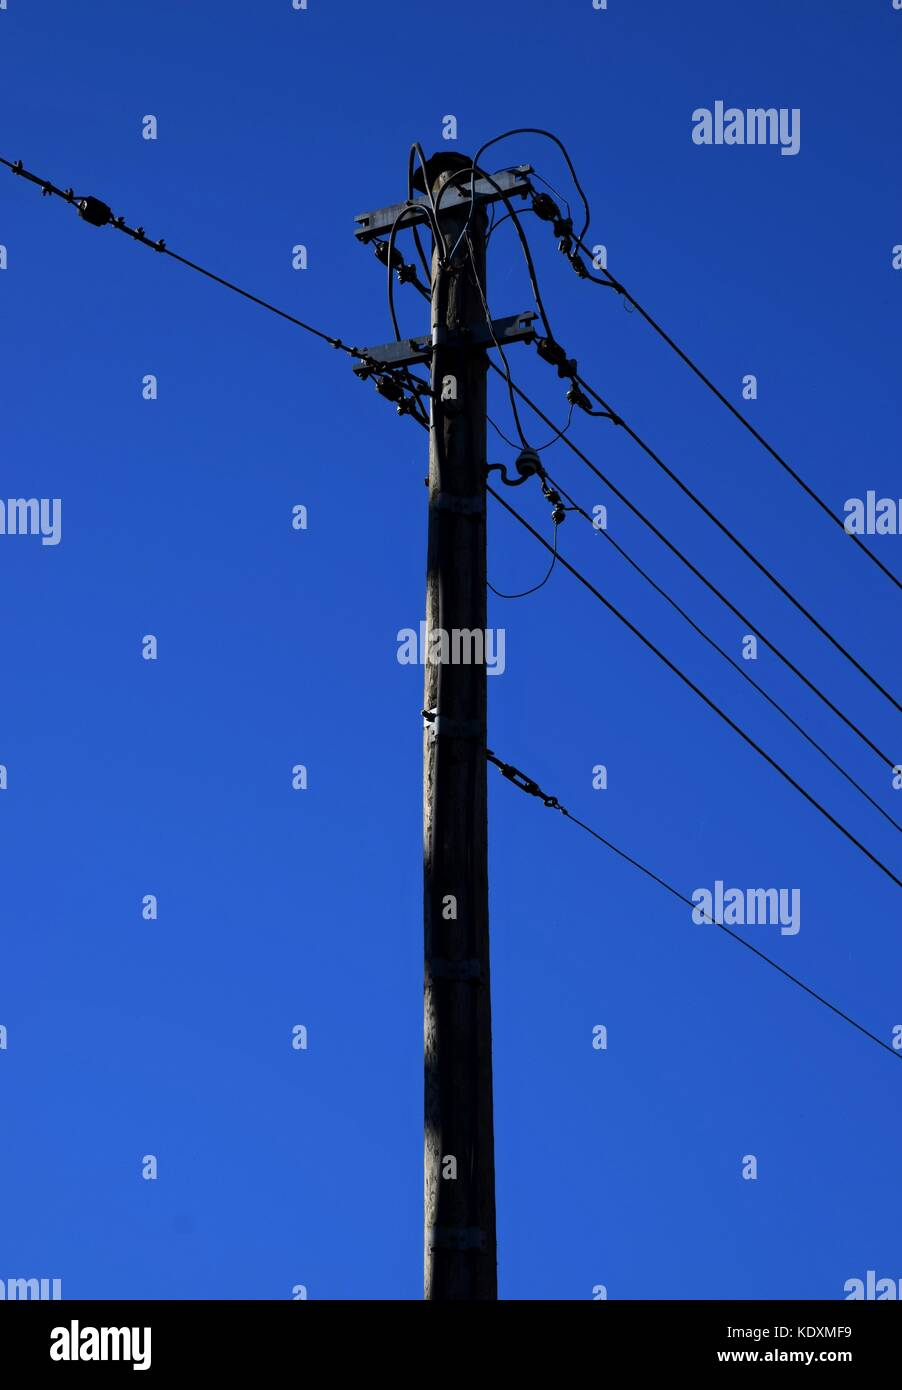 high power pole in the Country, power cable in autumn with colorful blue sky - Stock Image